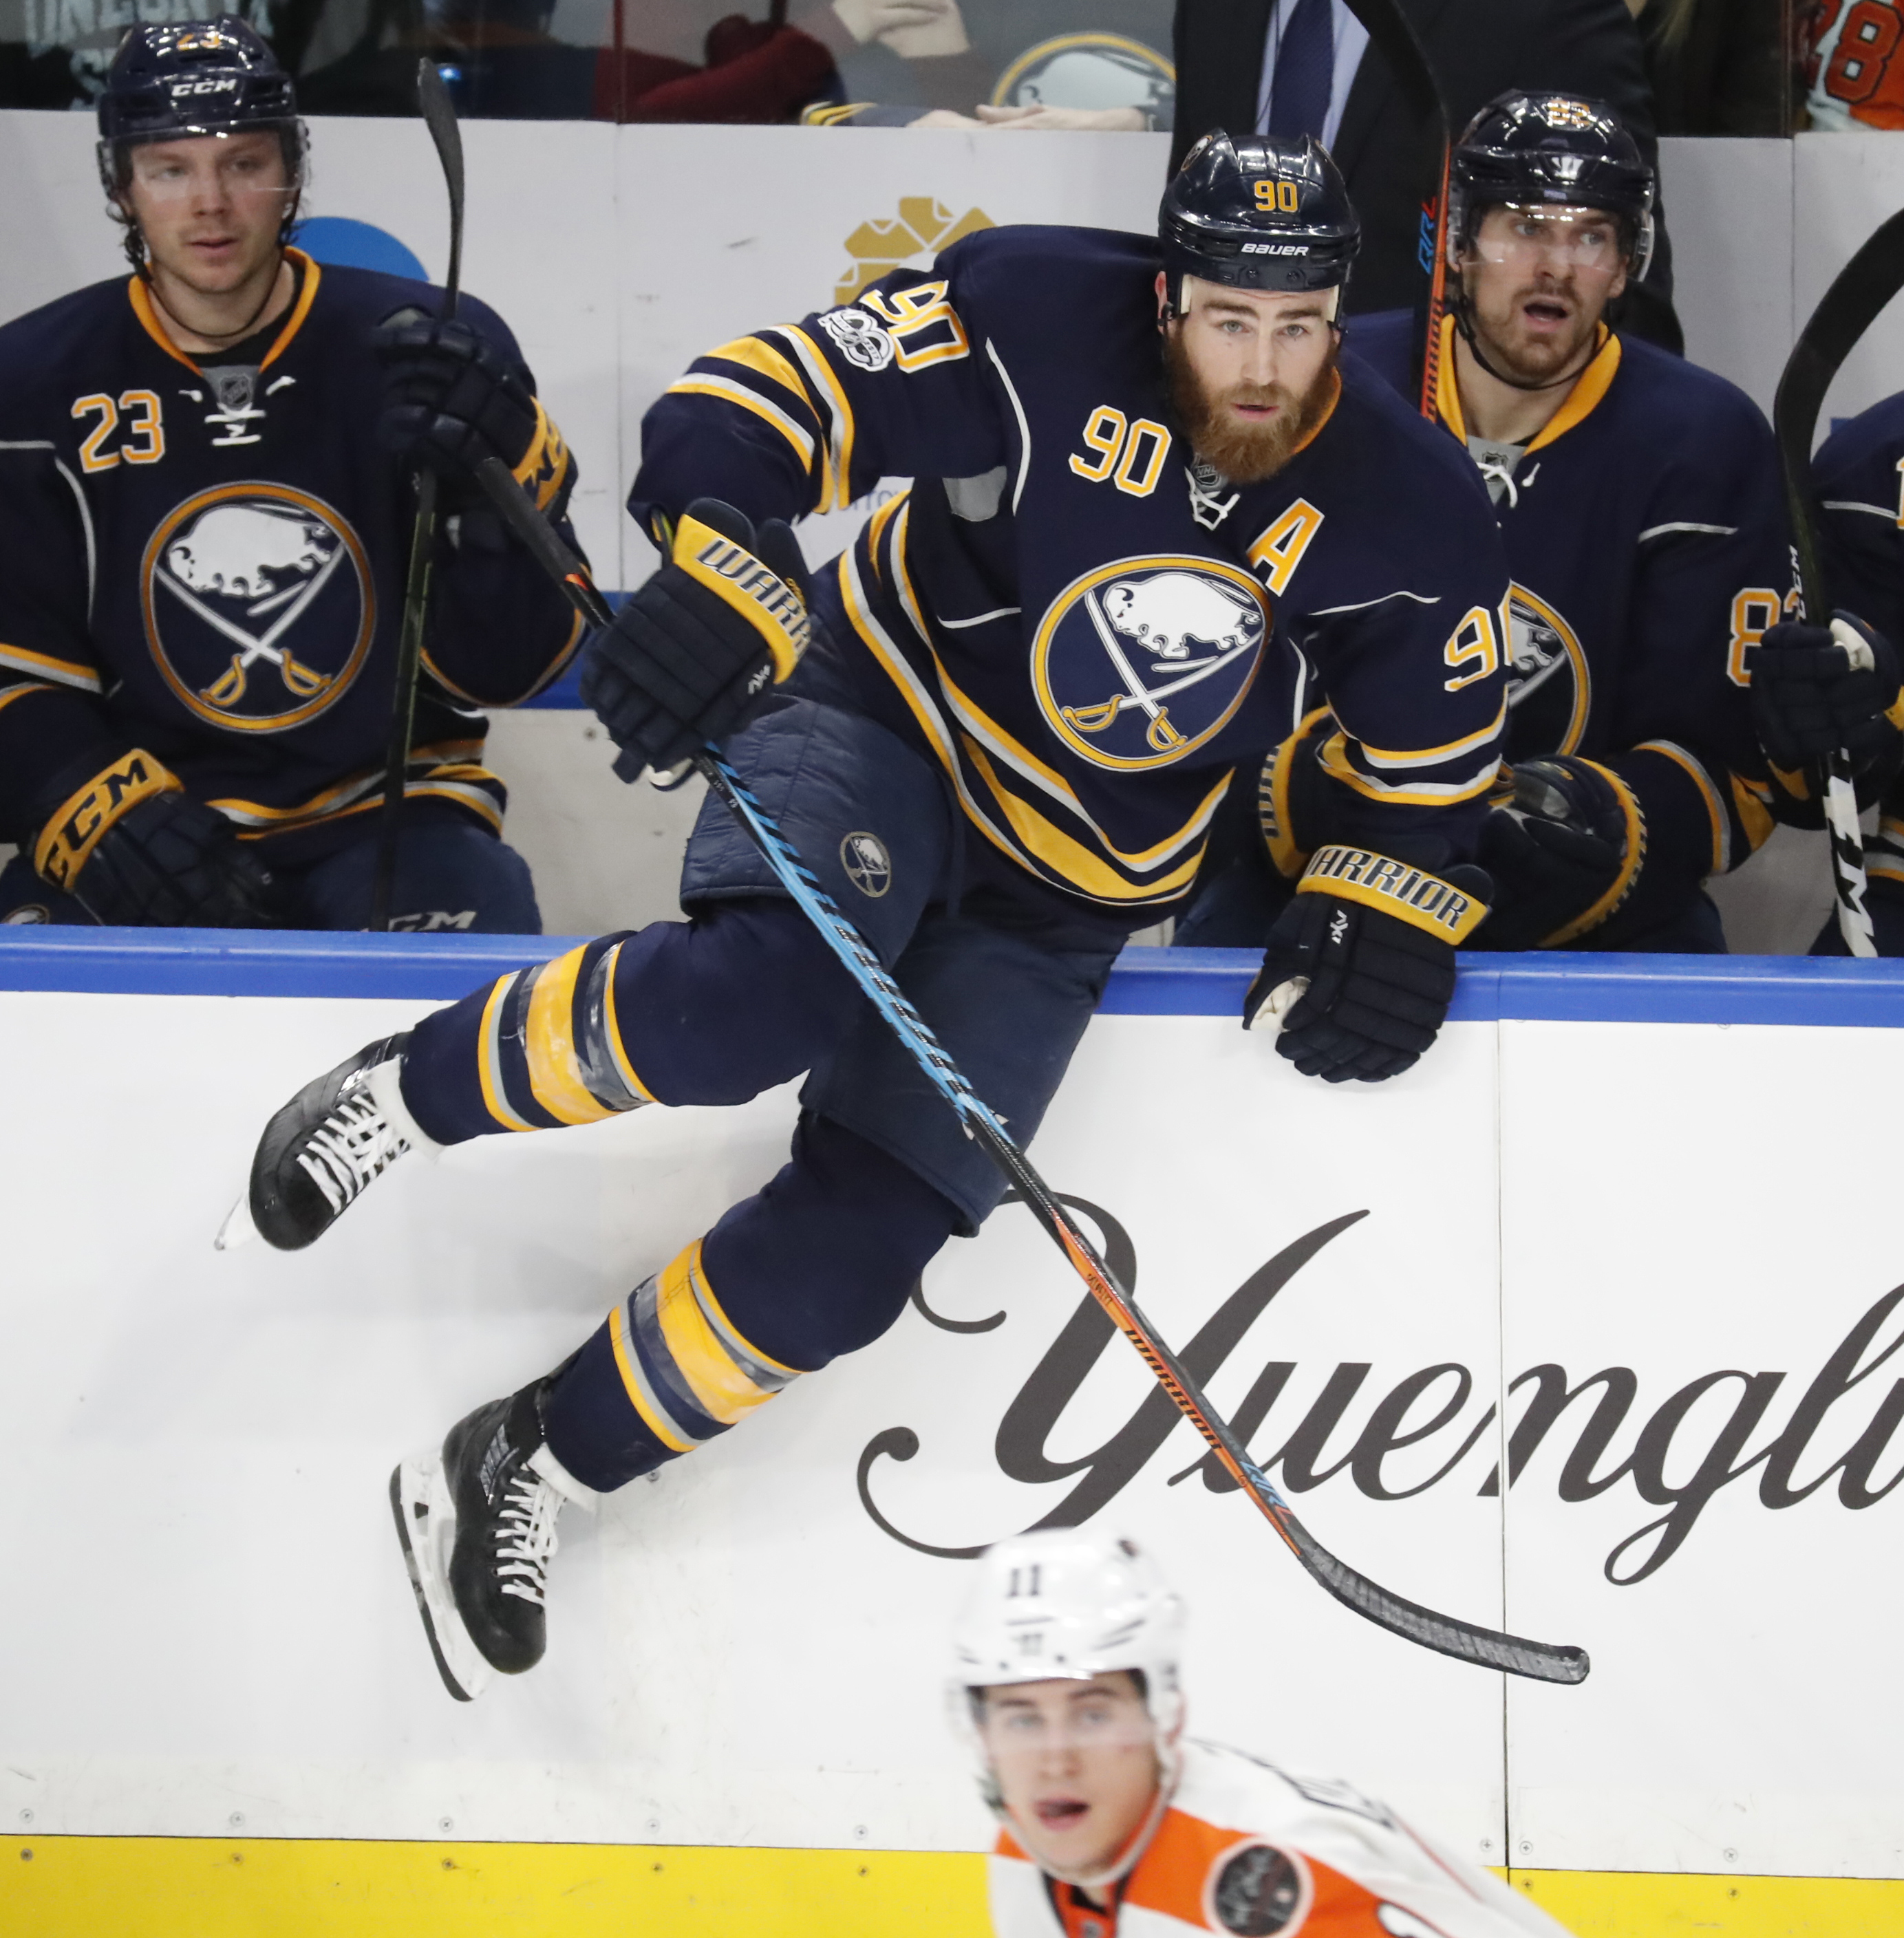 Sabres forward Ryan O'Reilly will also wear an 'A' for Canada. (Harry Scull Jr./Buffalo News)